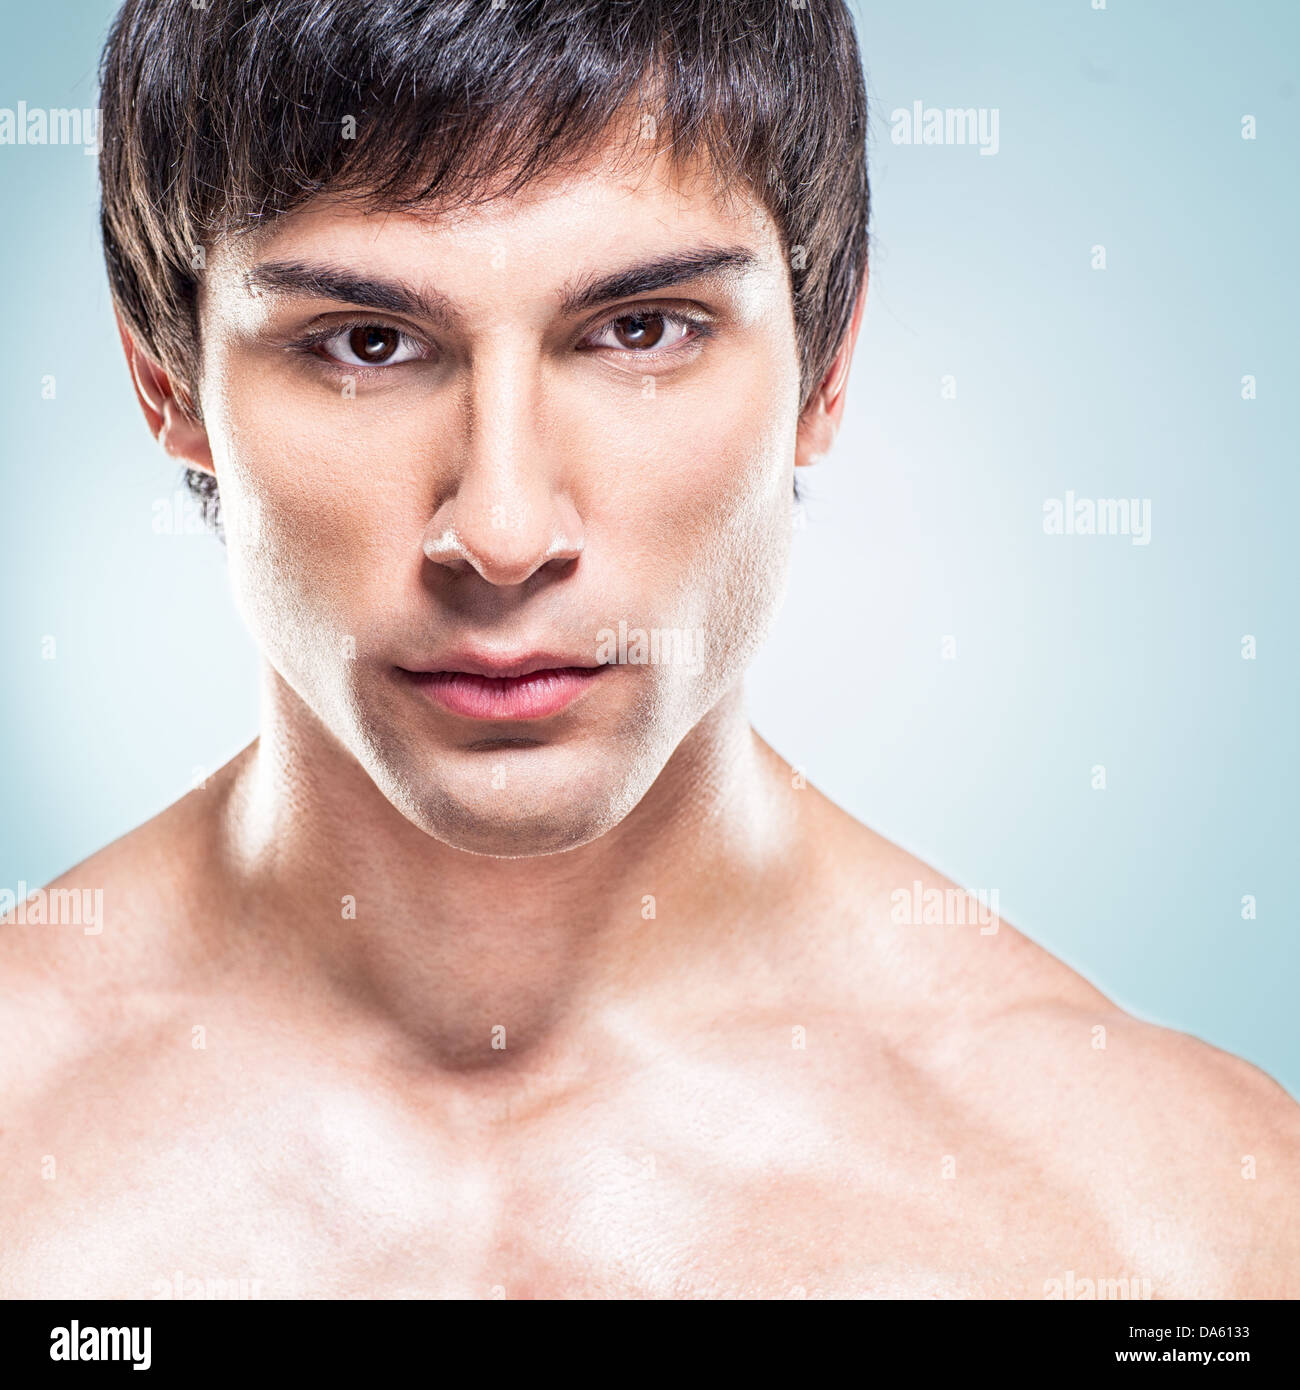 A Handsome Male Model Posing In Front Of A Blue Background Stock Photo Alamy